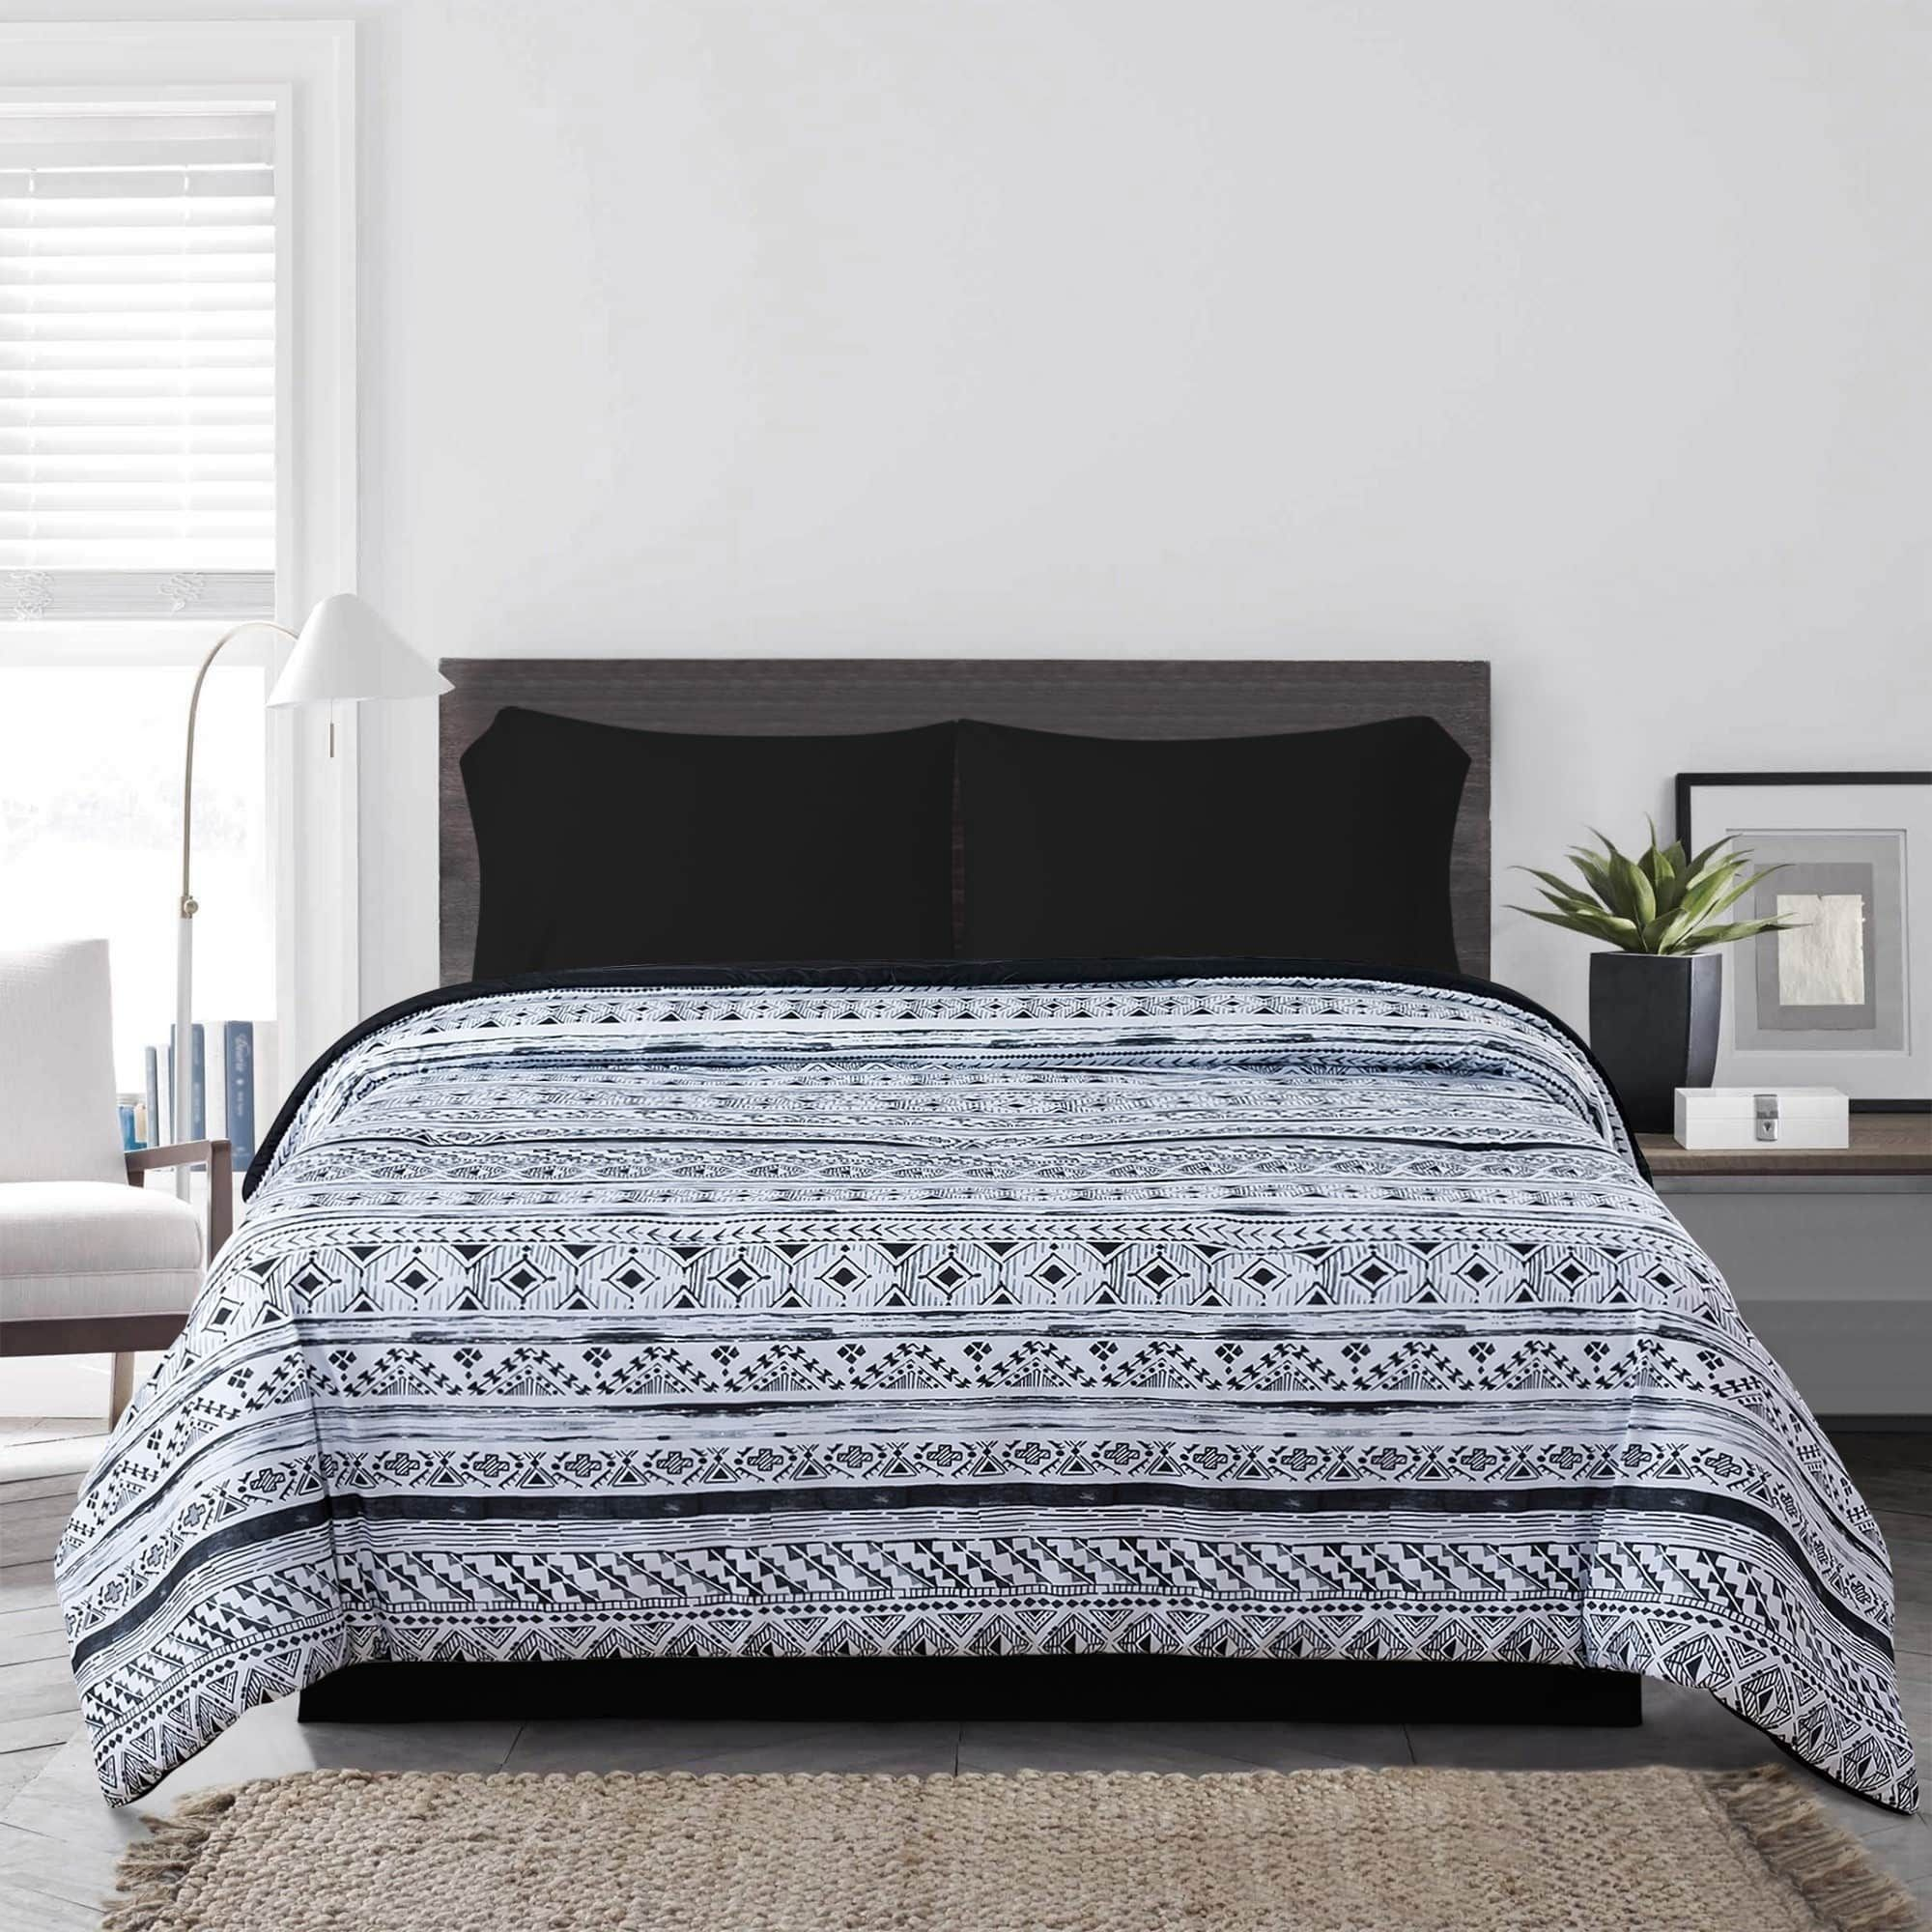 Online Shopping Bedding Furniture Electronics Jewelry Clothing More Most Comfortable Sheets Online Bedding Stores Affordable Bedding